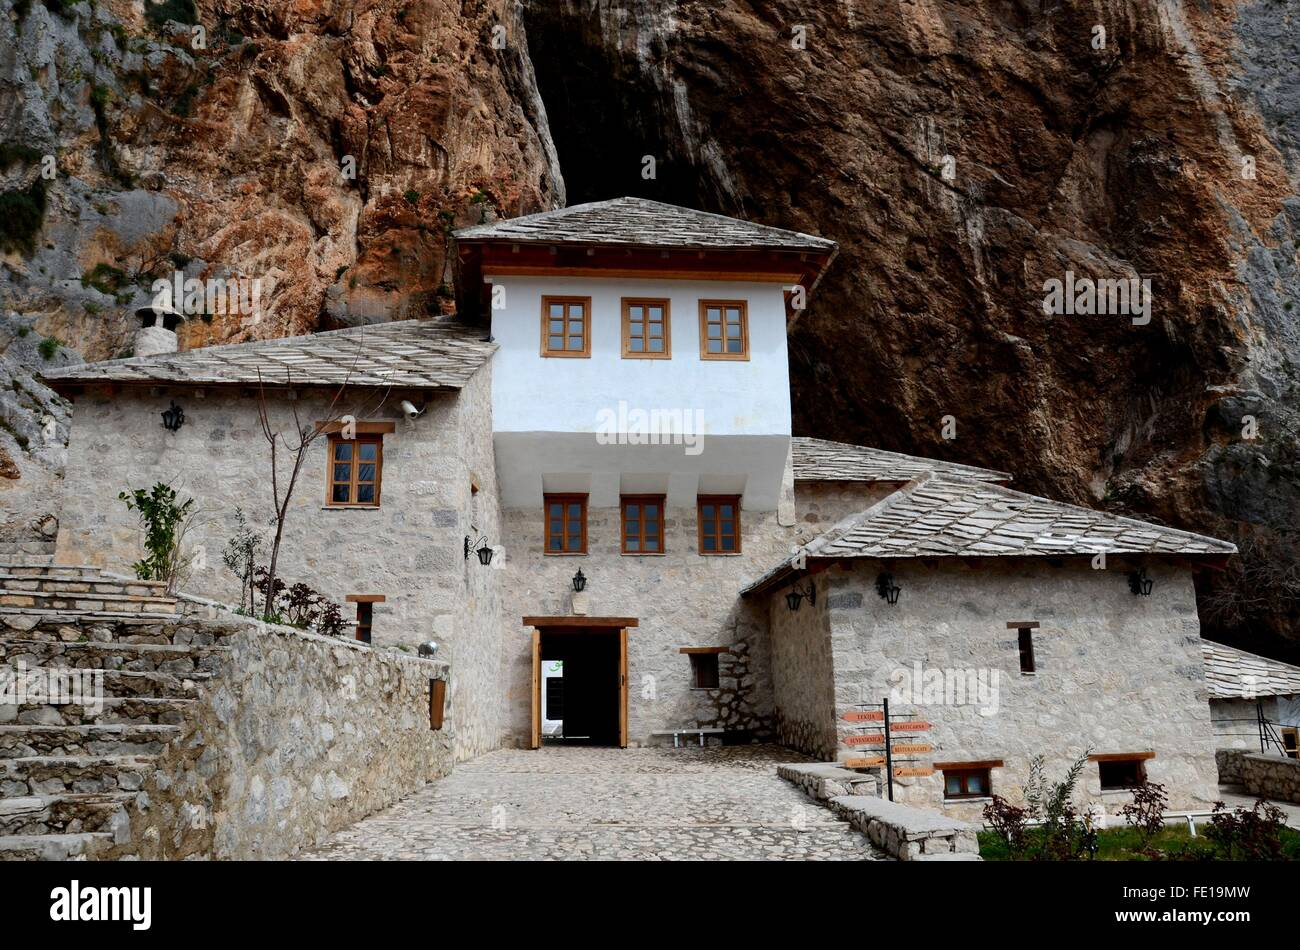 Blagaj Sufi Muslim dervish stone monastery structure in mountains Bosnia Herzegovina - Stock Image